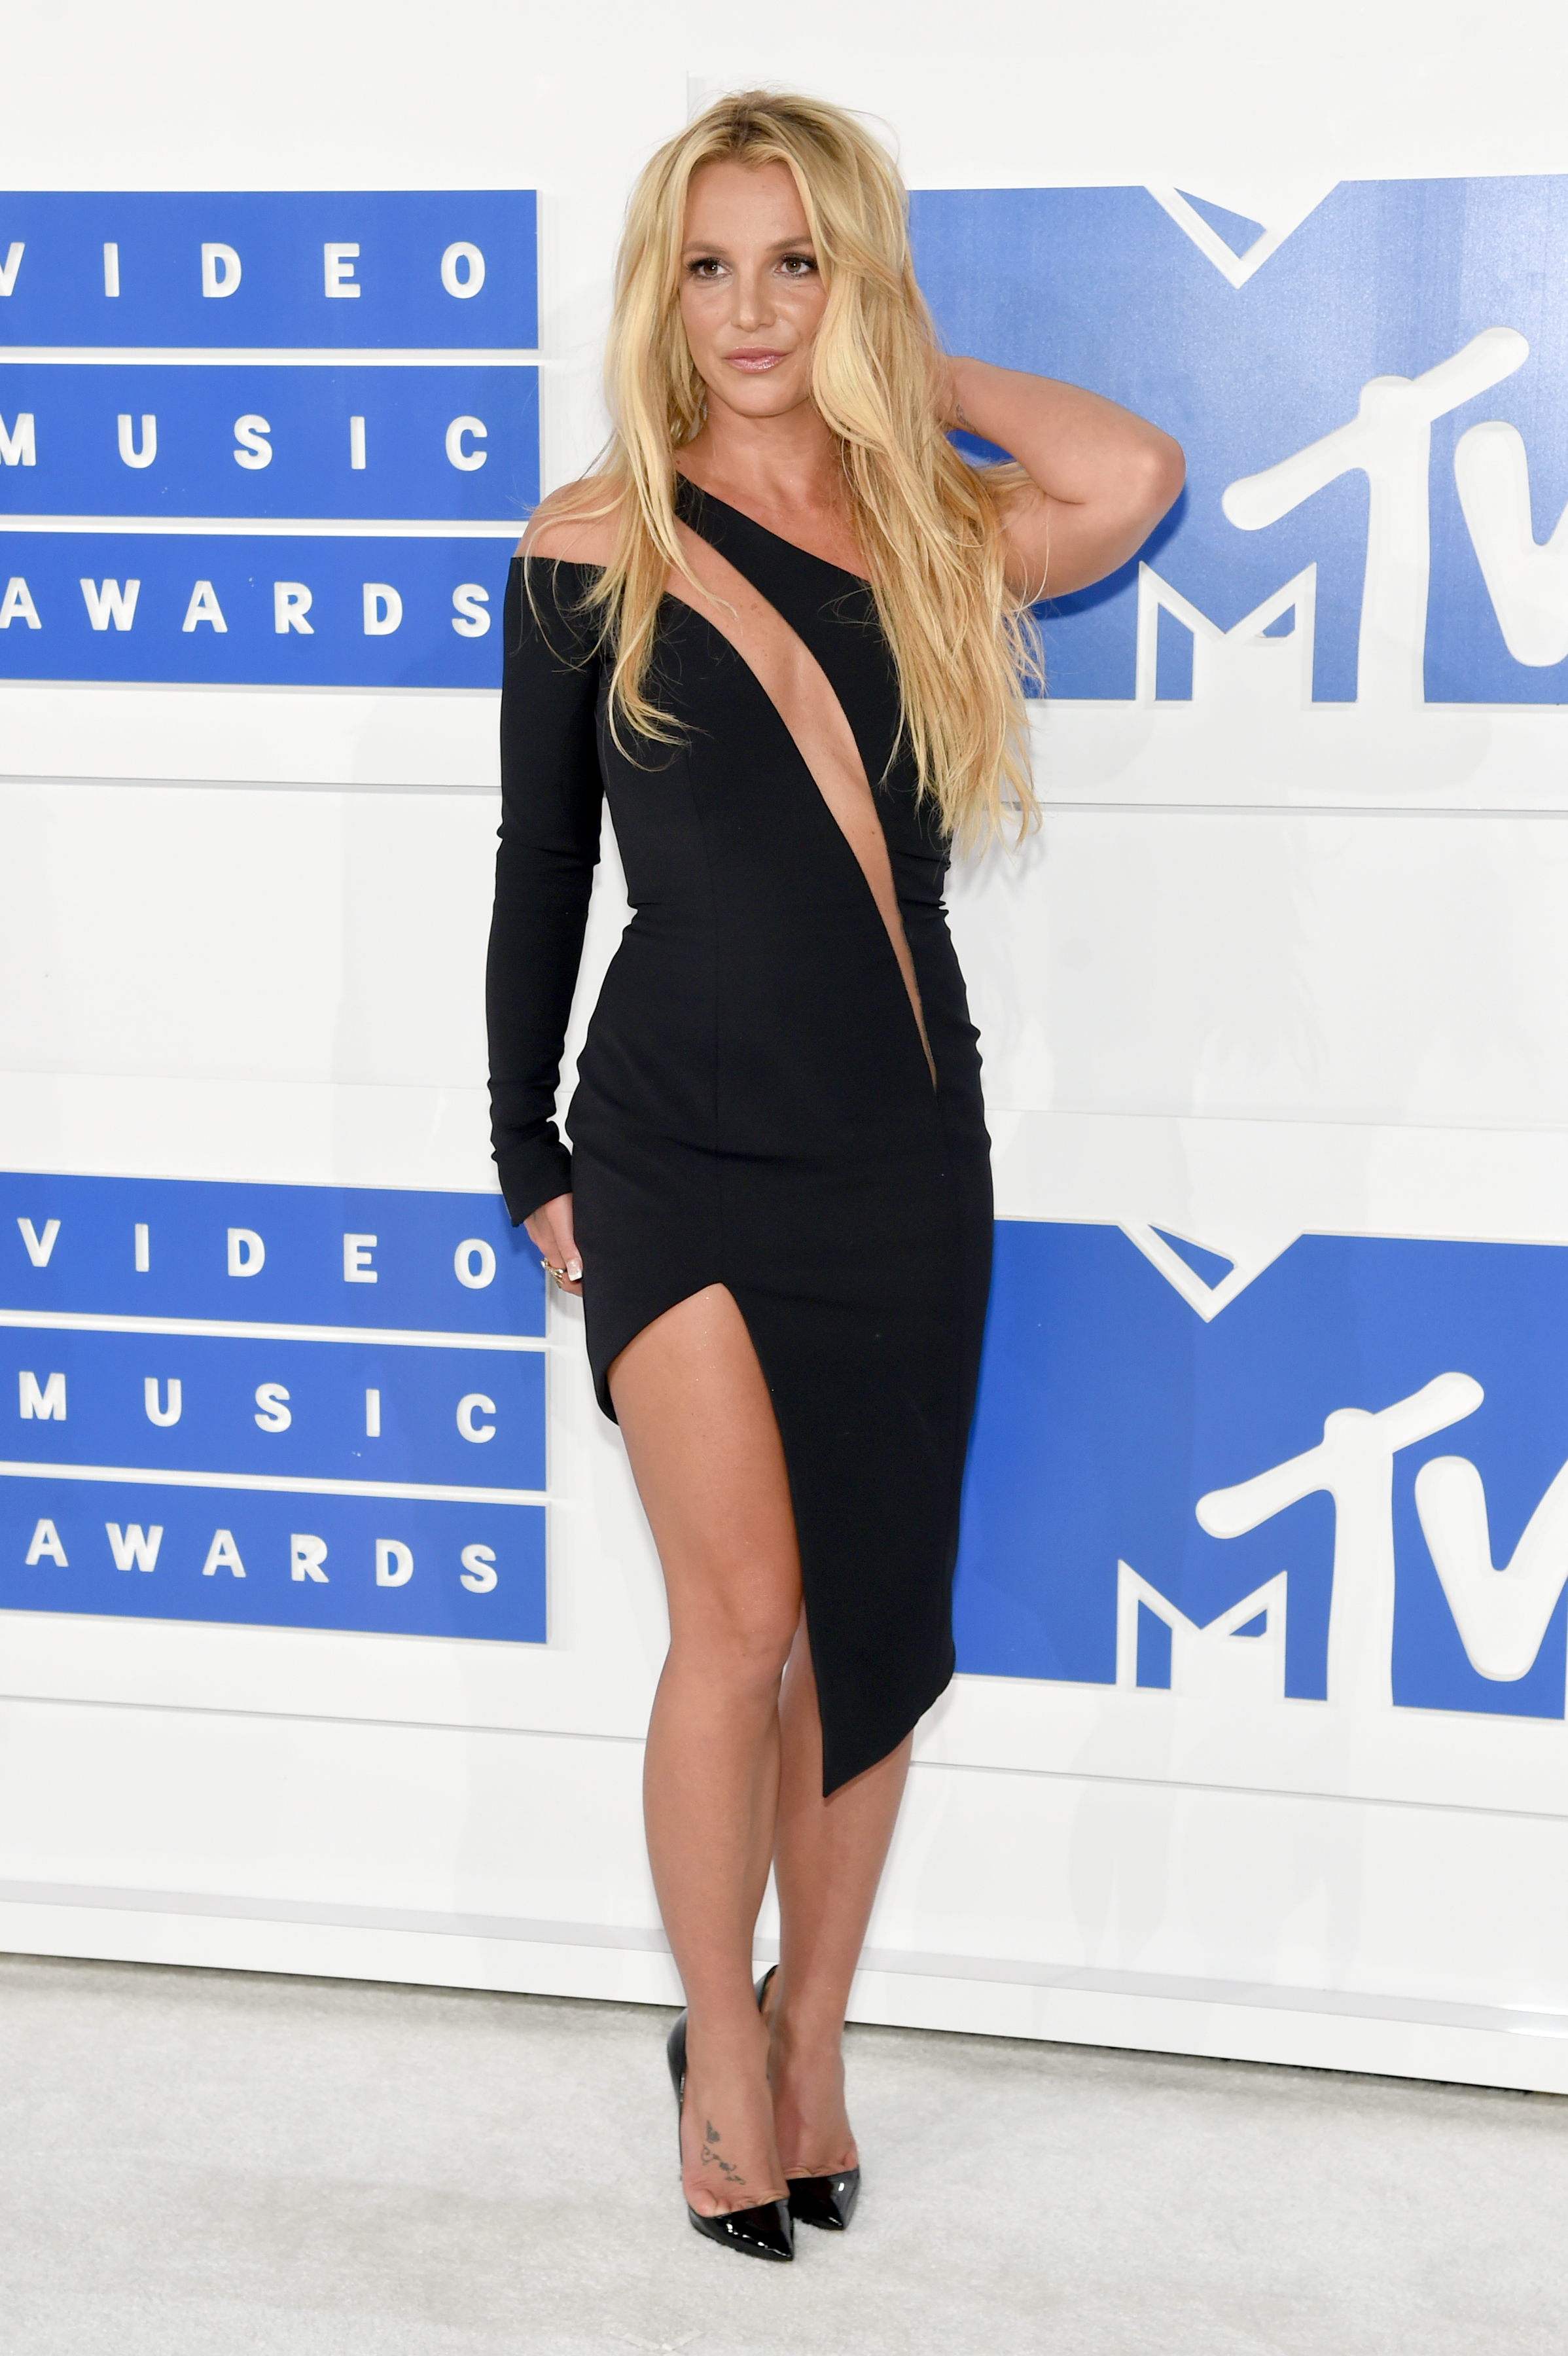 Britney Spears reportedly upset over her 2016 VMAs performance